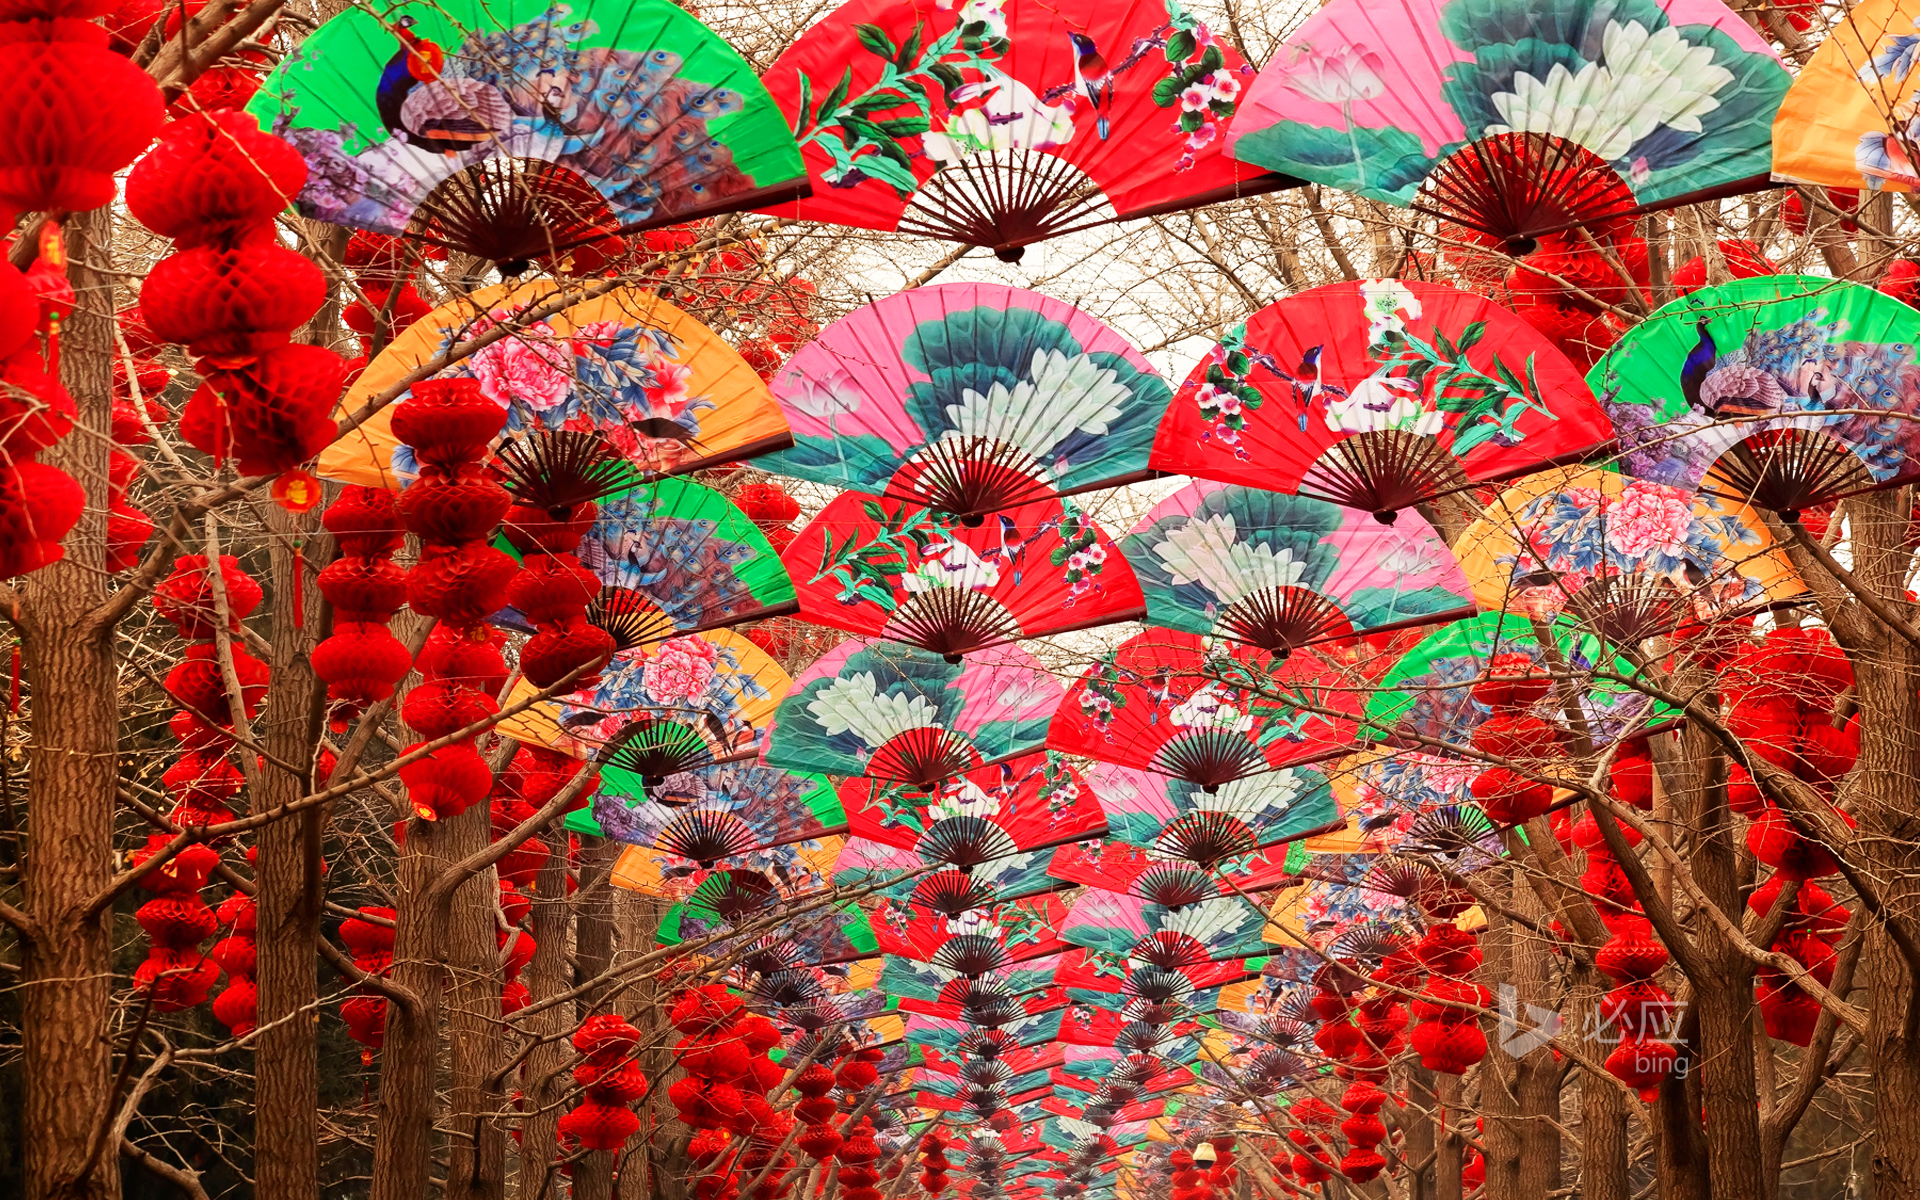 Paper fans and red lanterns during the Spring Festival in Beijing Temple of Heaven